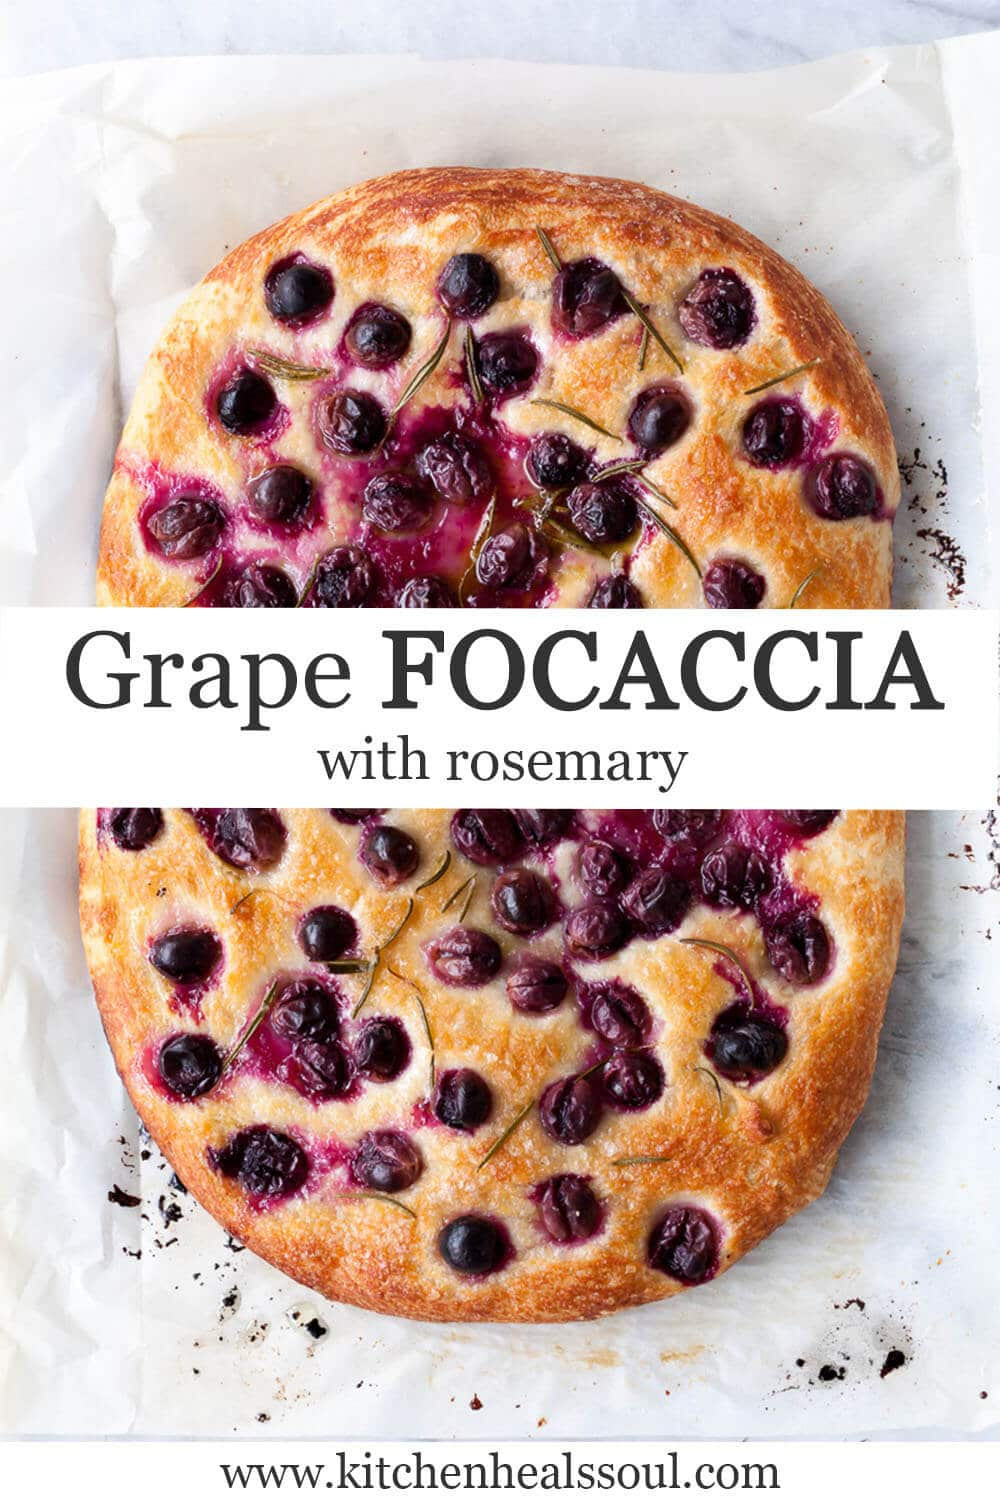 Grape focaccia freshly baked with rosemary